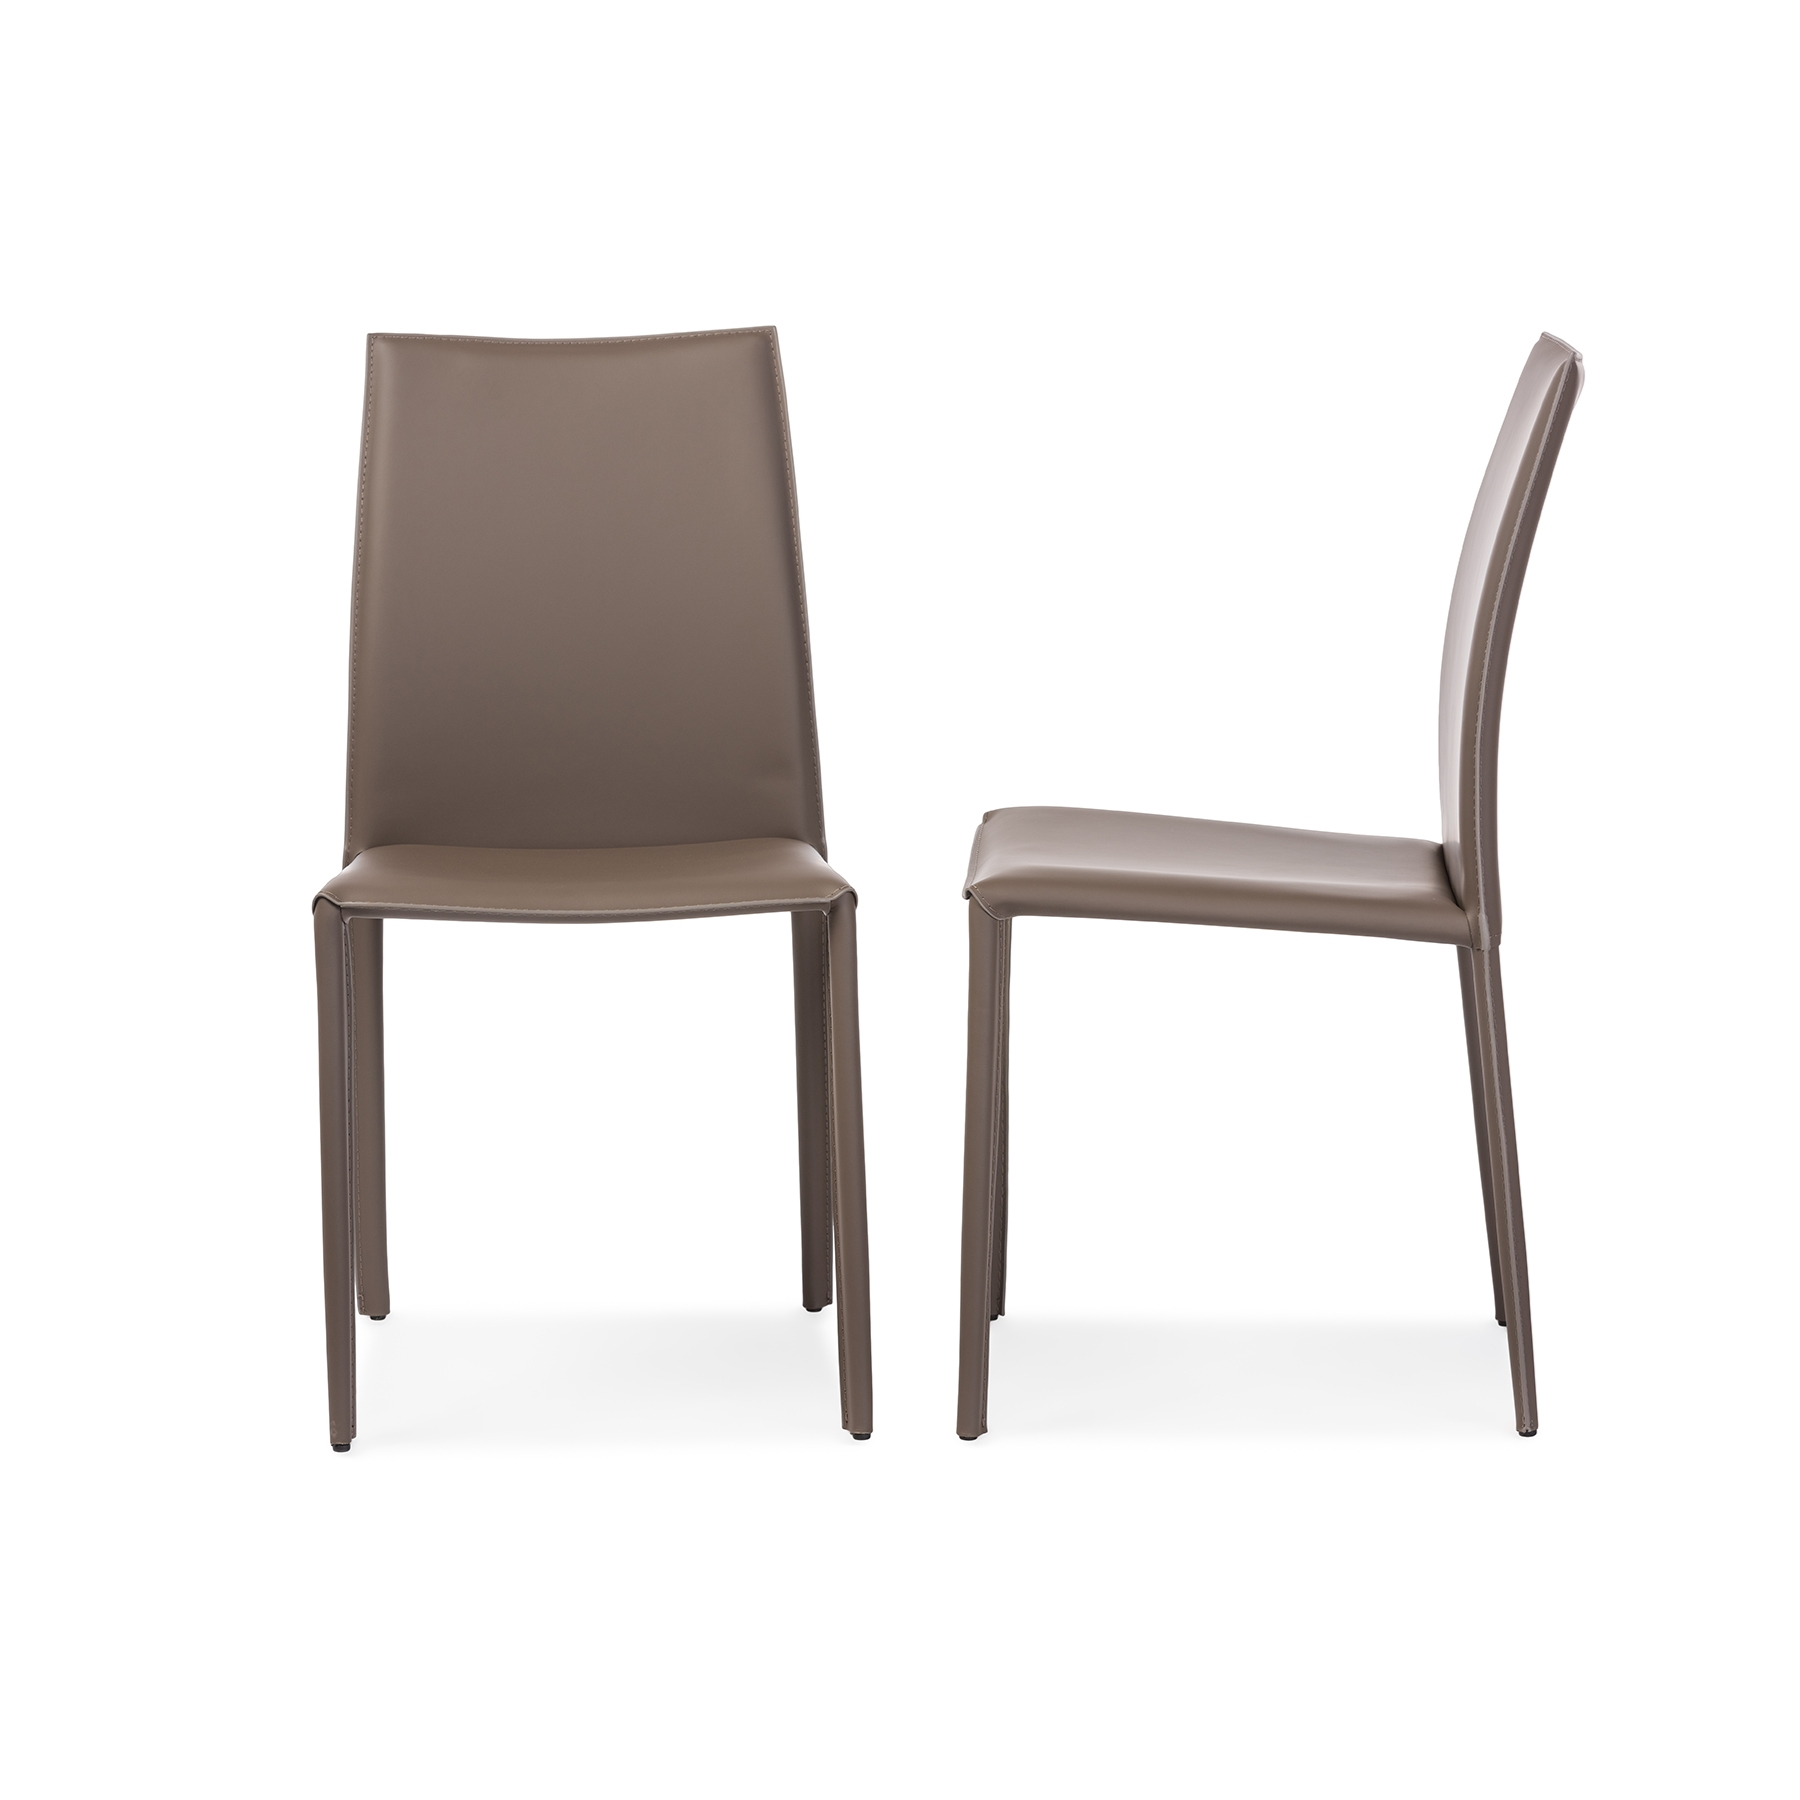 dining chairs contemporary leather. baxton studio rockford modern and contemporary taupe bonded leather upholstered dining chair - bsoalc-1025 chairs